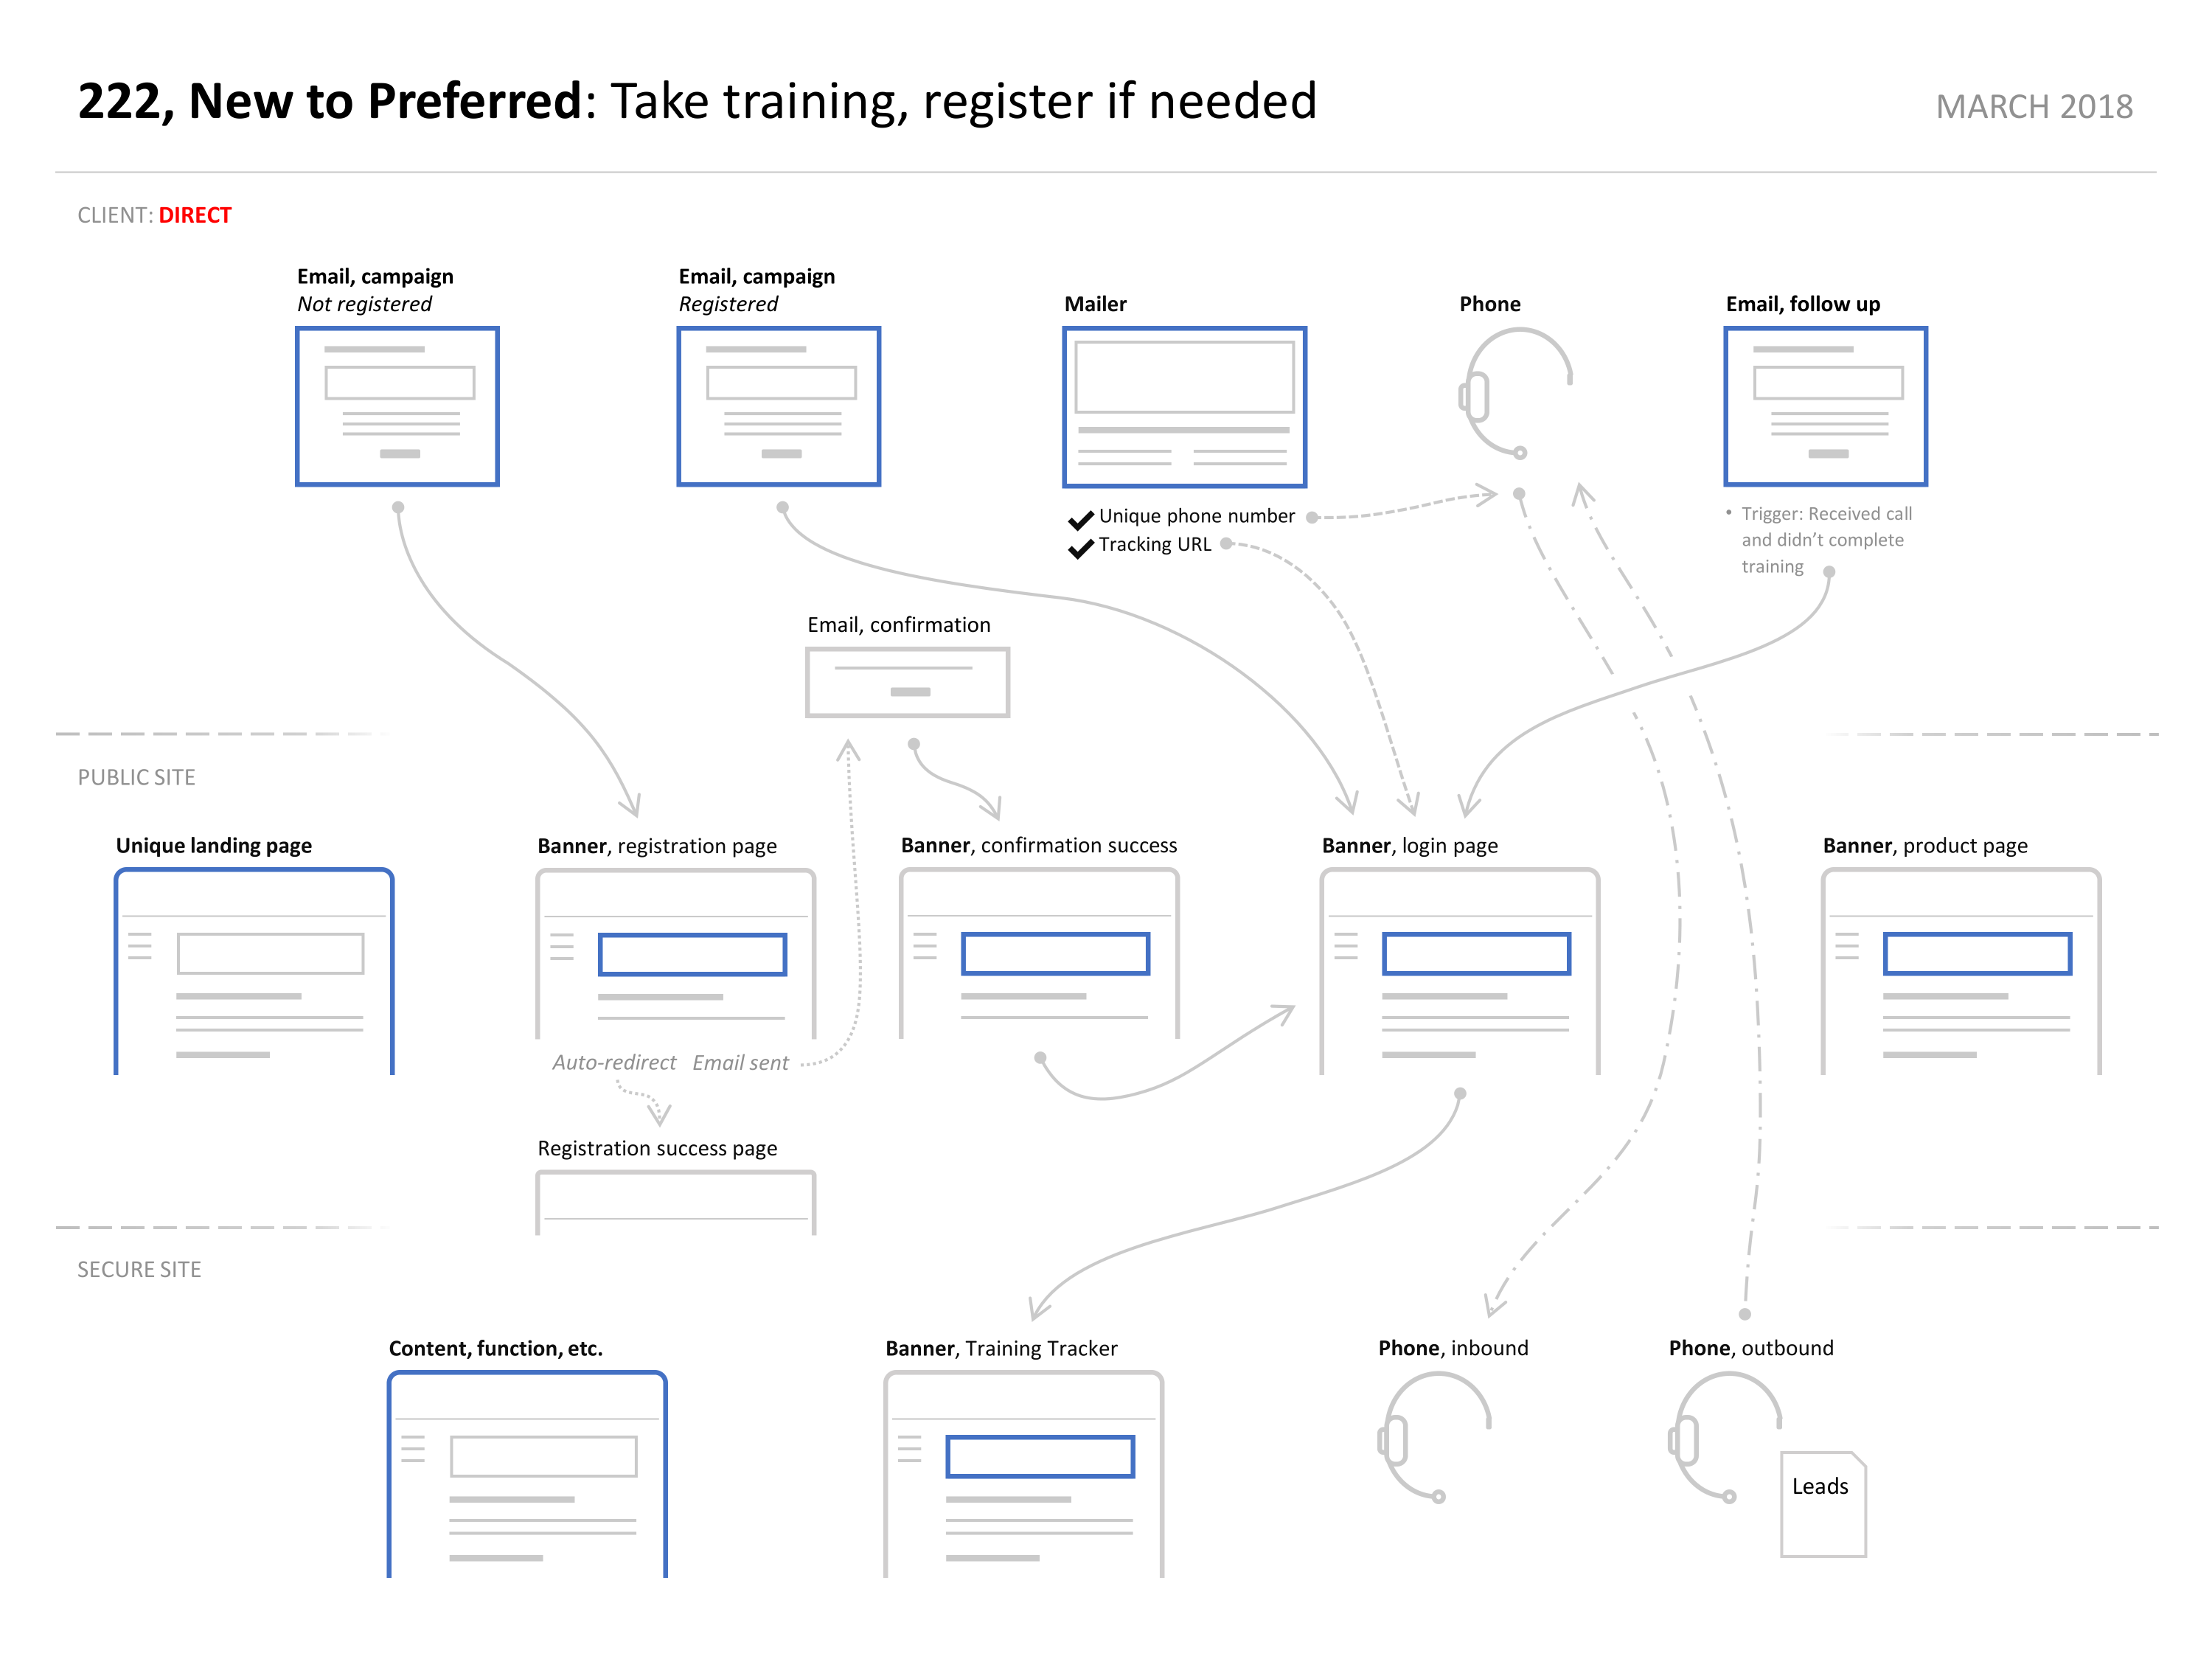 User flow from direct marketing campaigns.